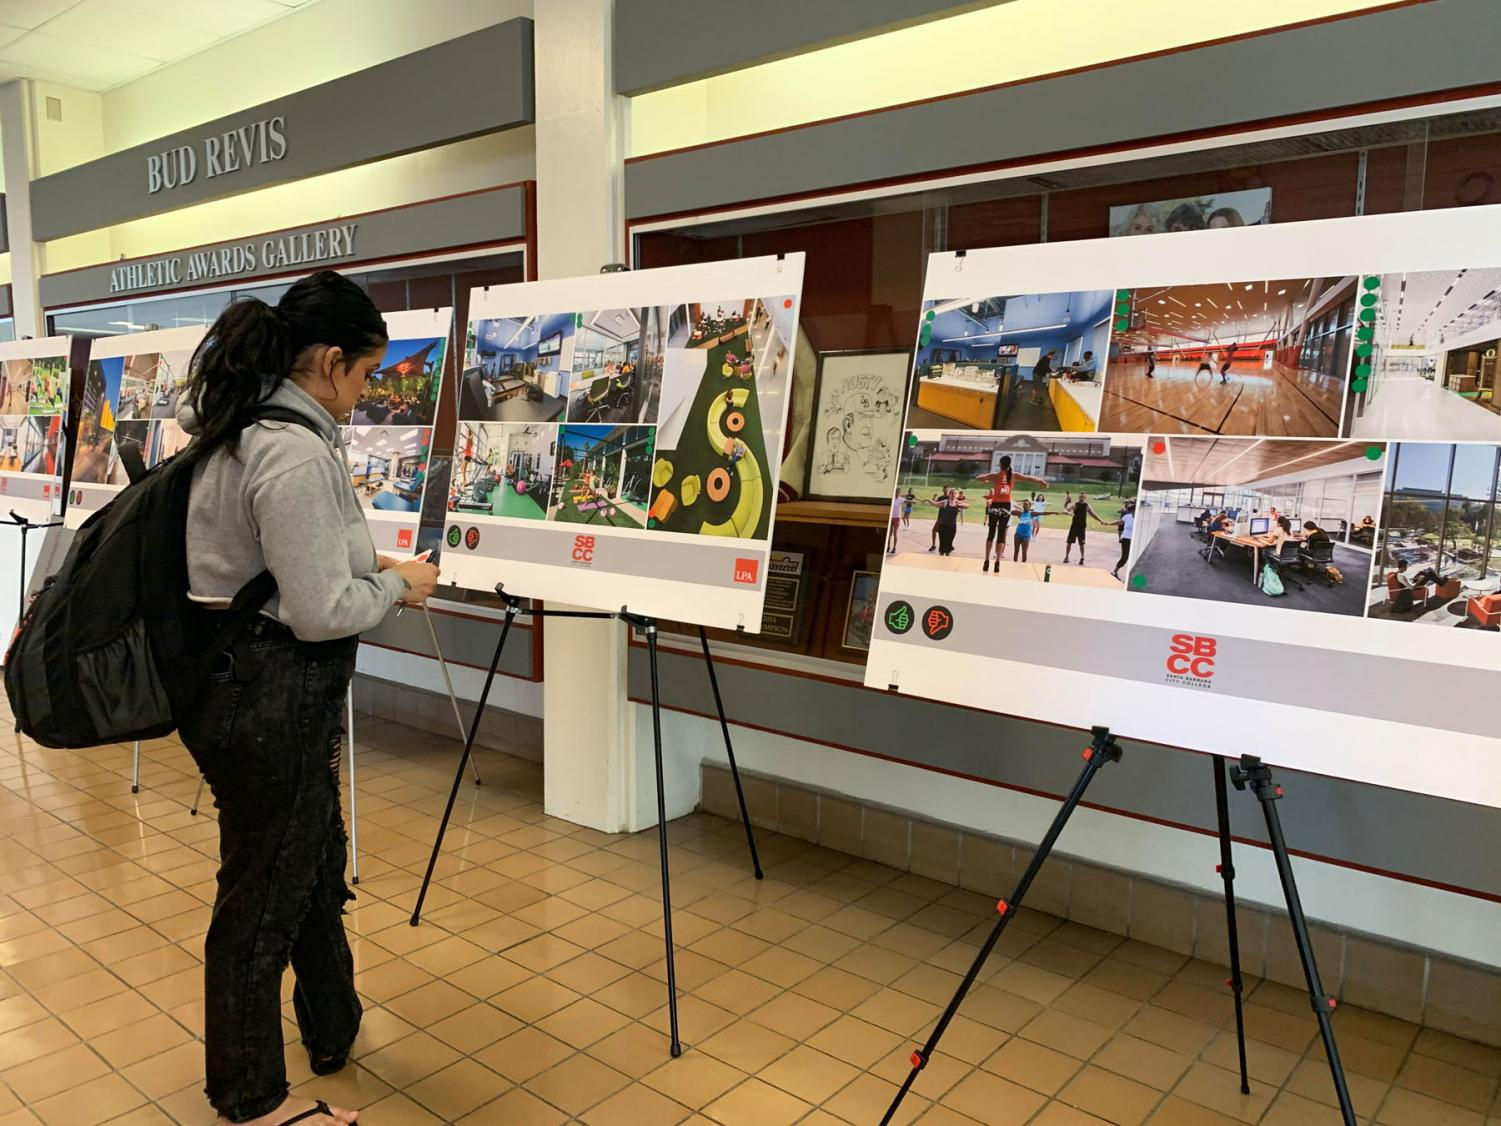 Paula Muñoz observes past project designs similar to the upcoming renovation of the Sports Pavillion on Wednesday, Nov. 13, 2019, in the Sports Pavilion at City College in Santa Barbara, Calif.